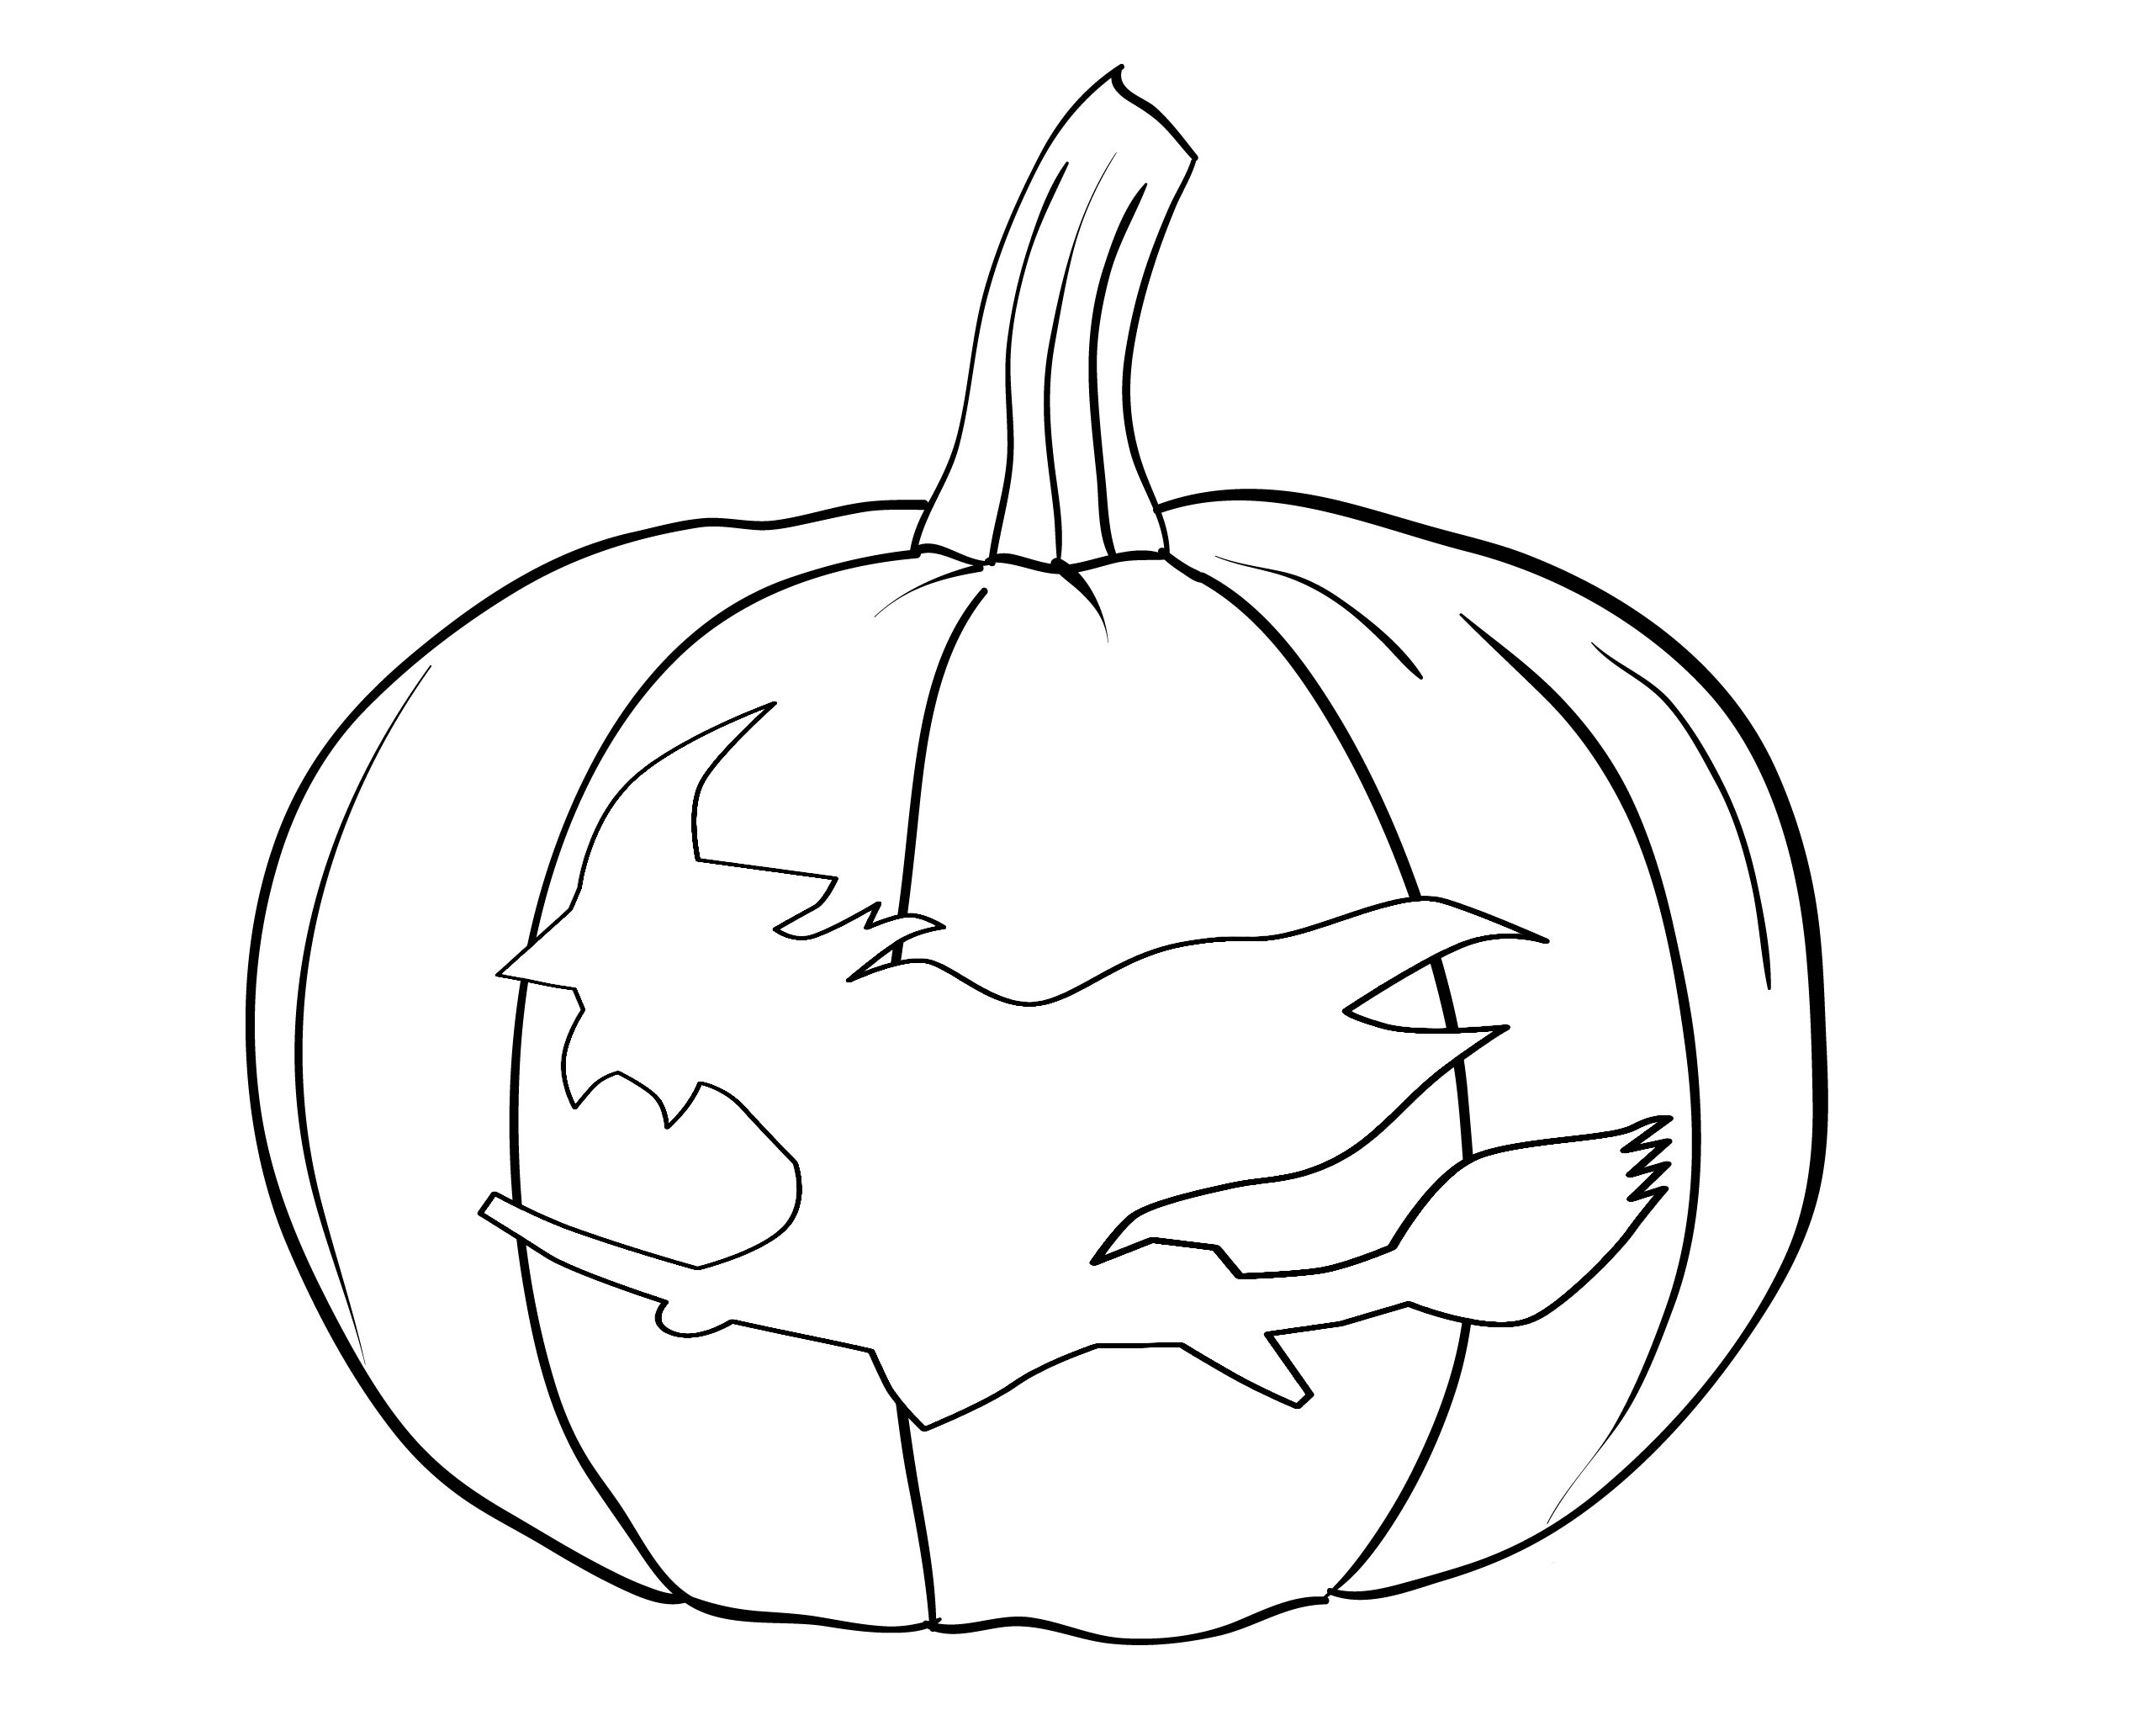 halloween pictures of pumpkins to color get this pumpkin halloween coloring pages for preschoolers color pumpkins of pictures to halloween